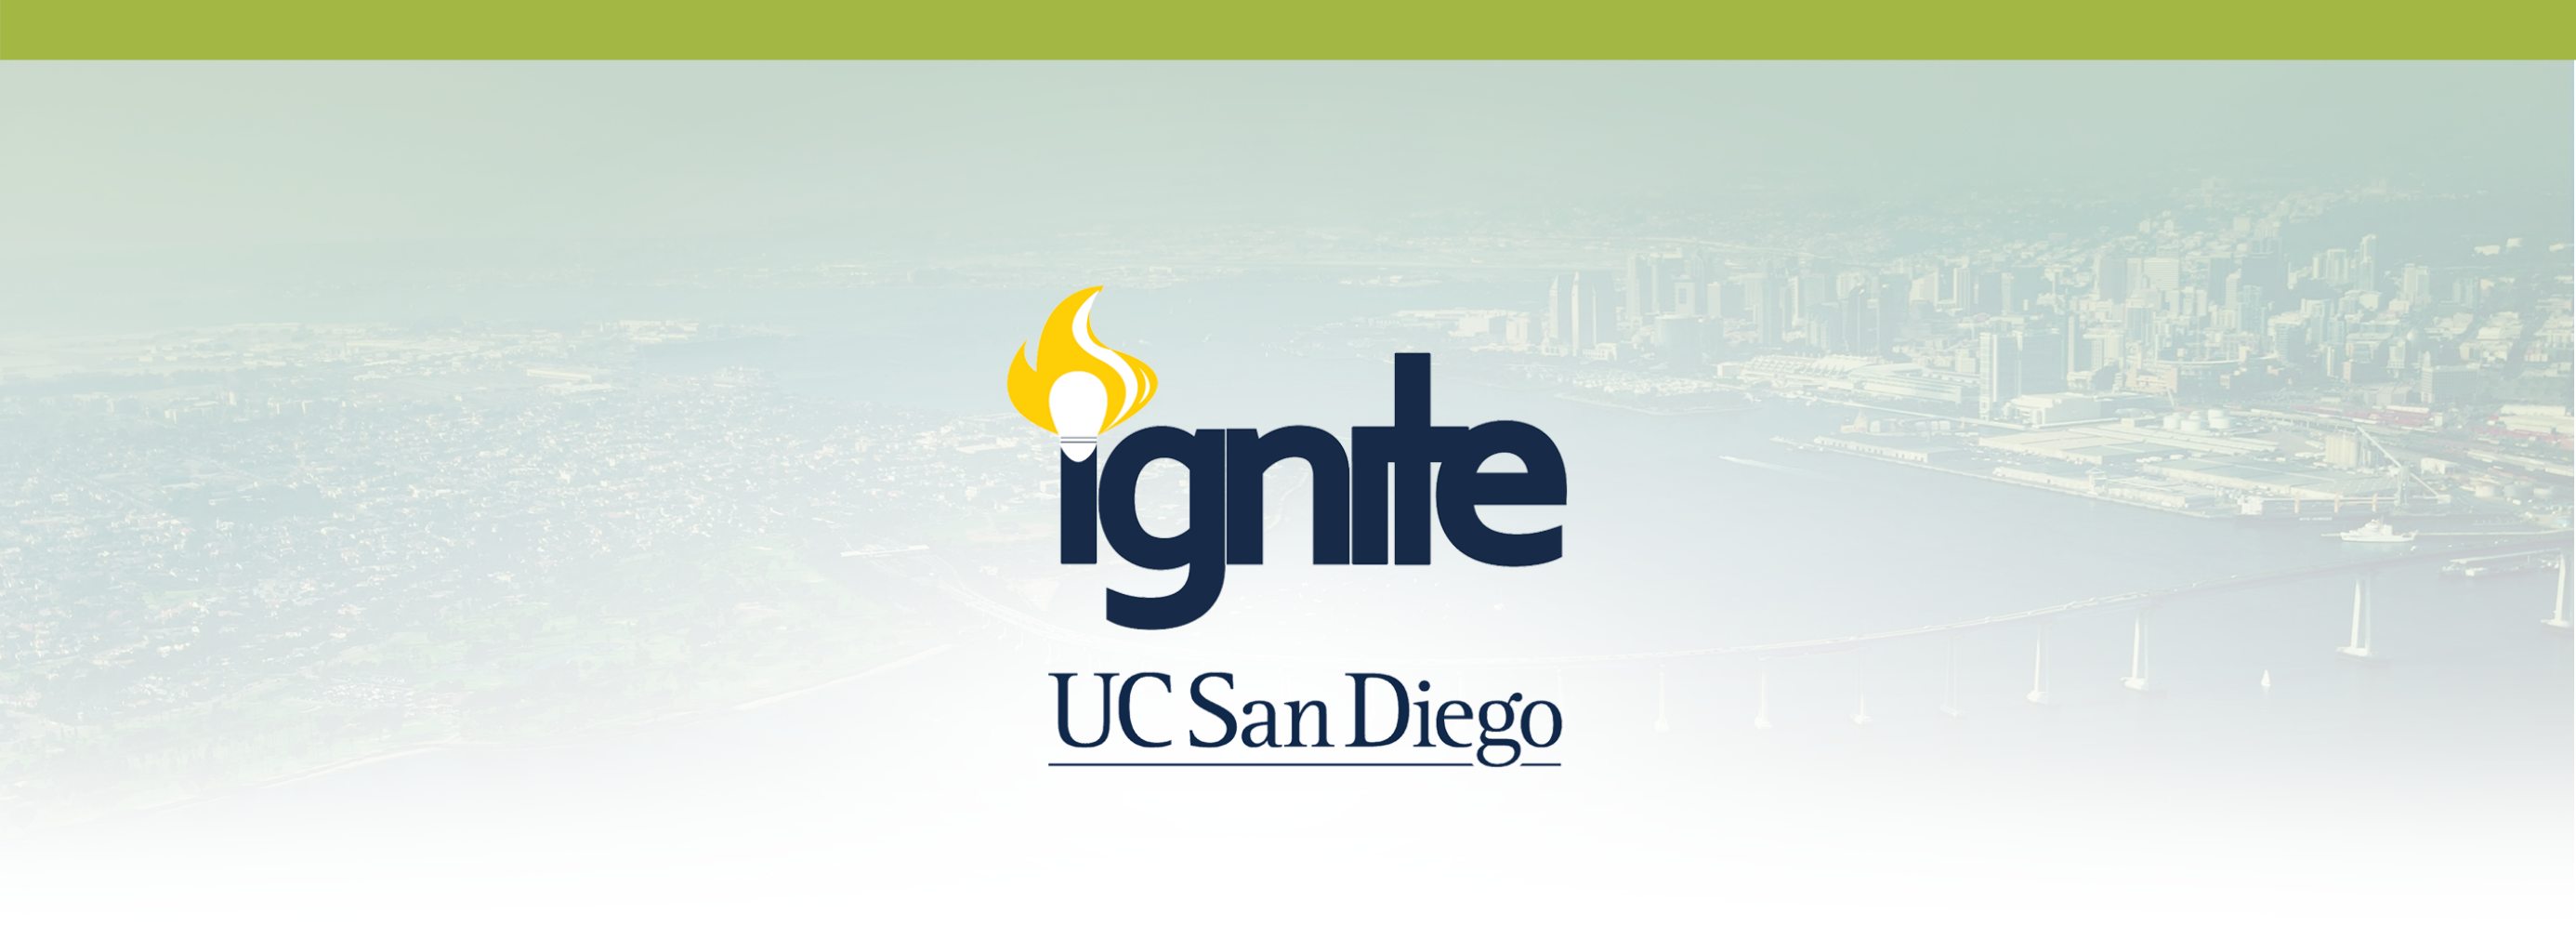 Ignite Conference UC San Diego